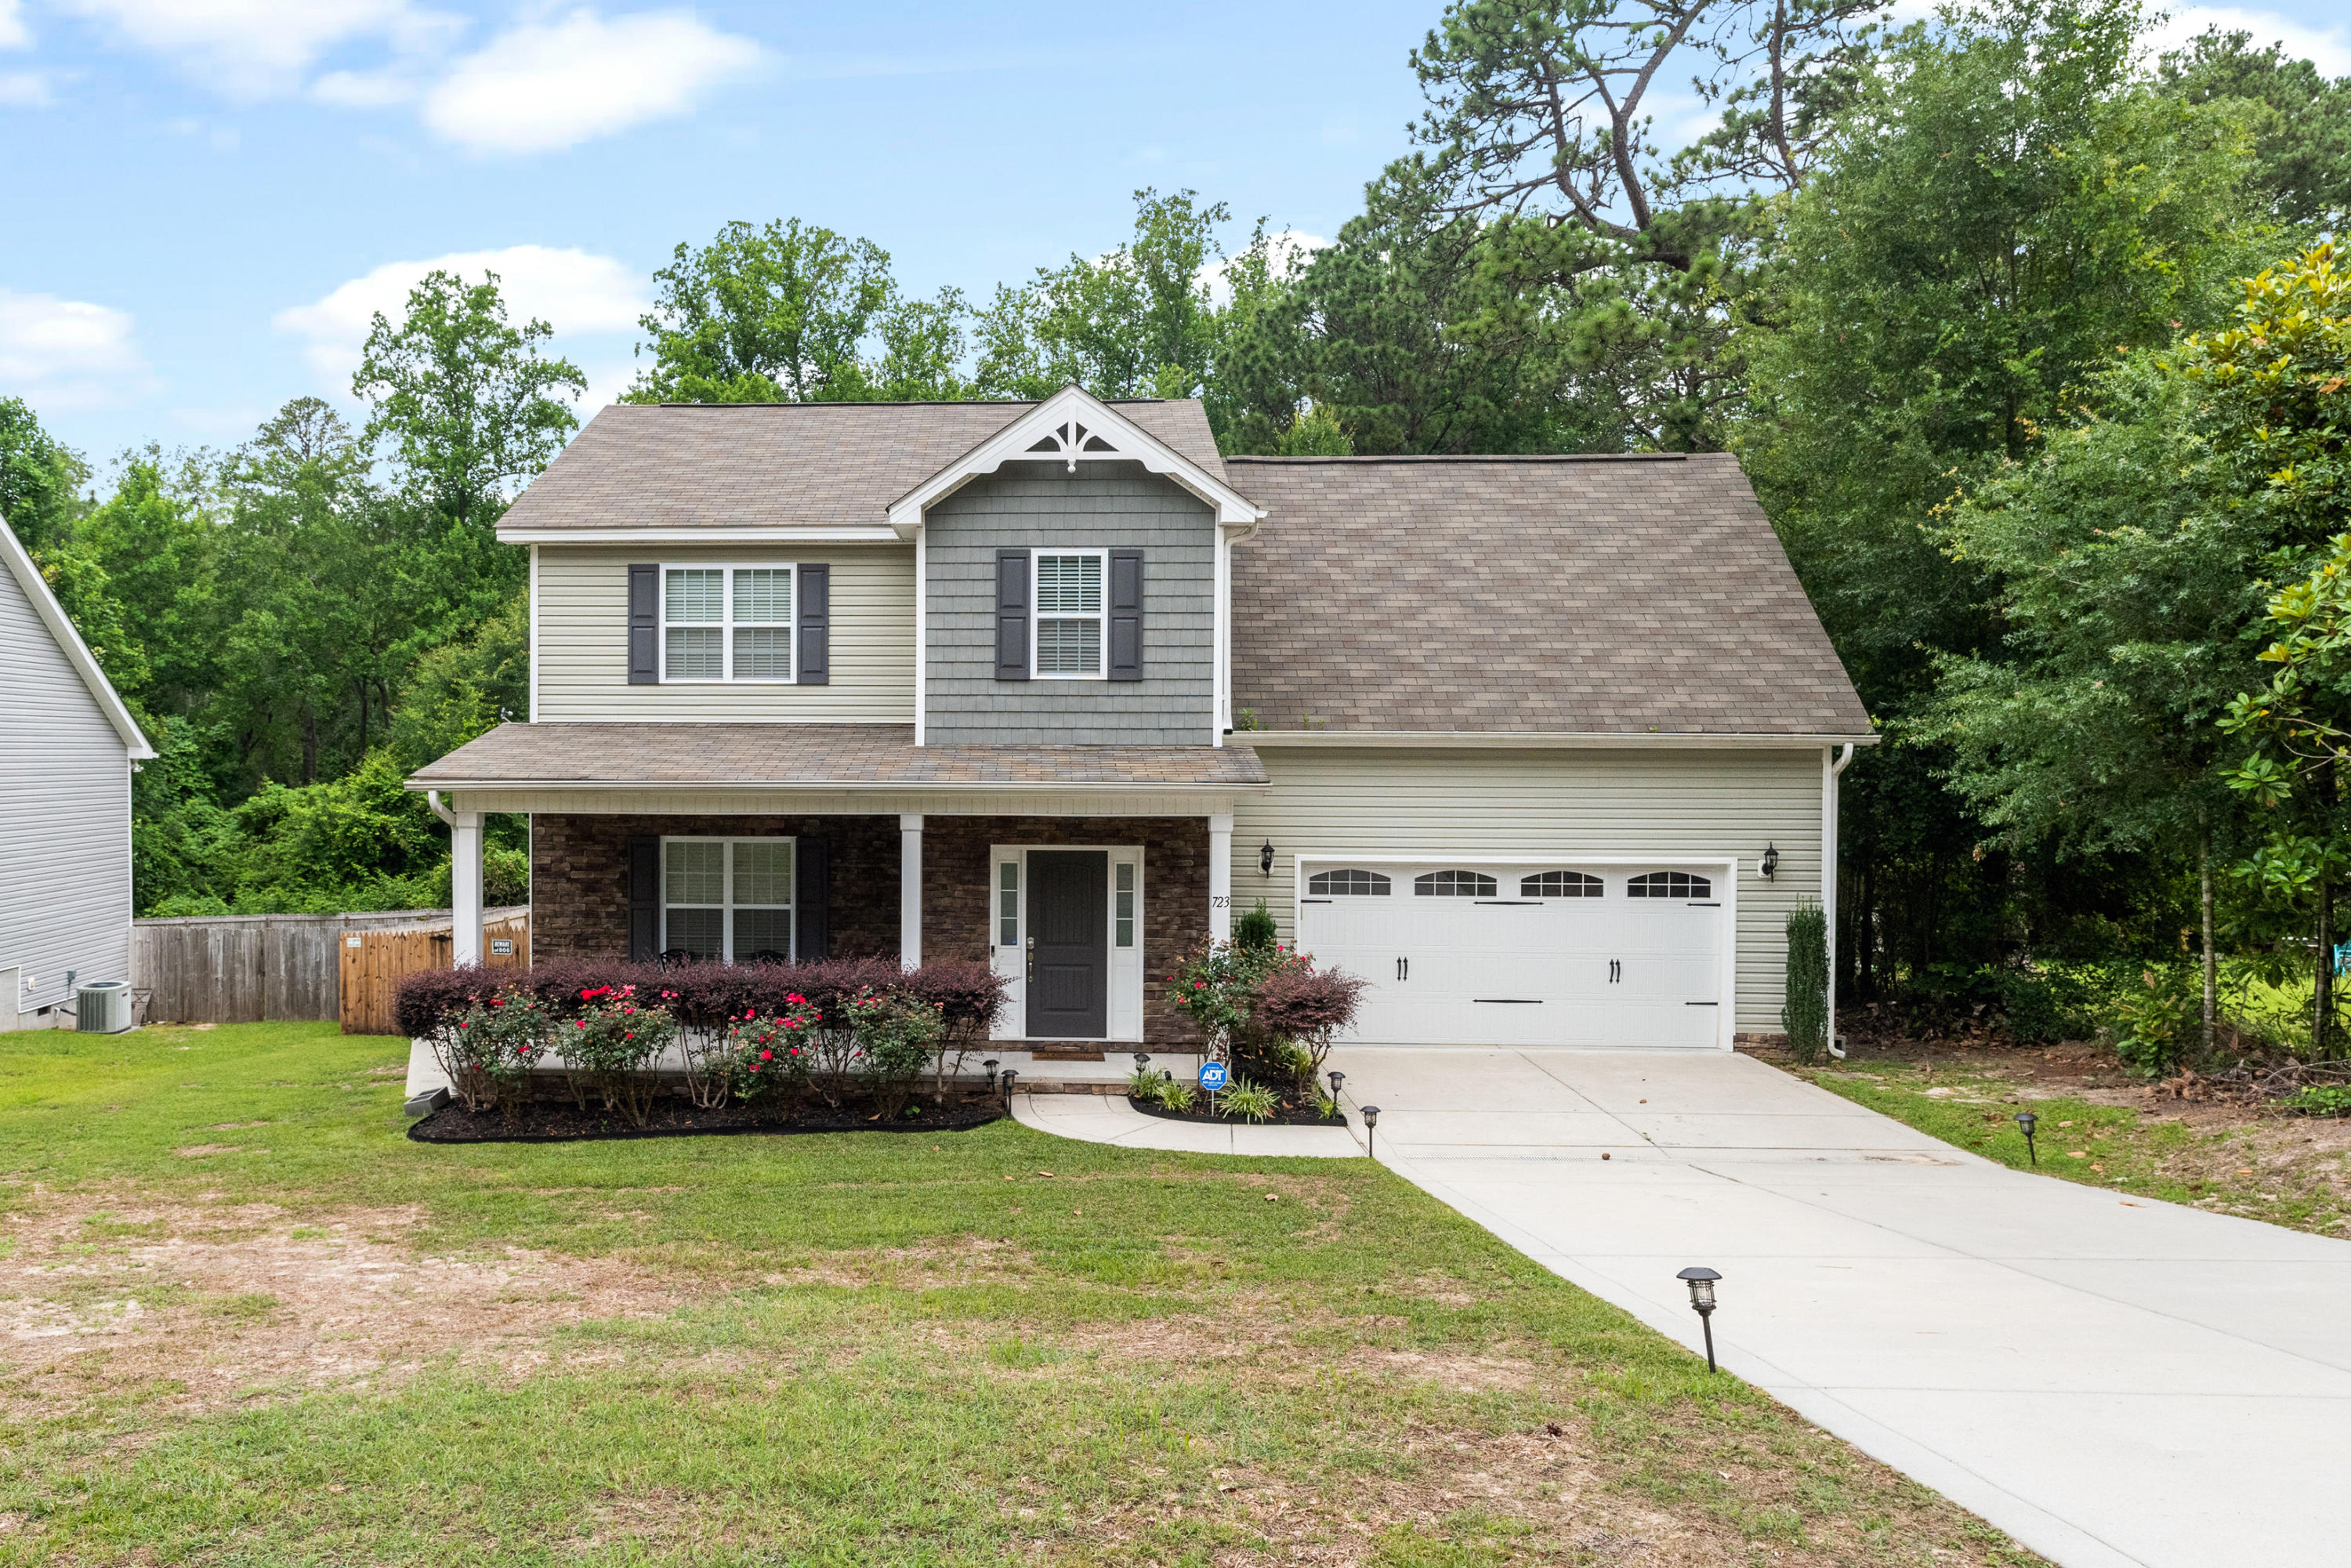 723 N Chapin Road, Aberdeen in Moore County, NC 28315 Home for Sale